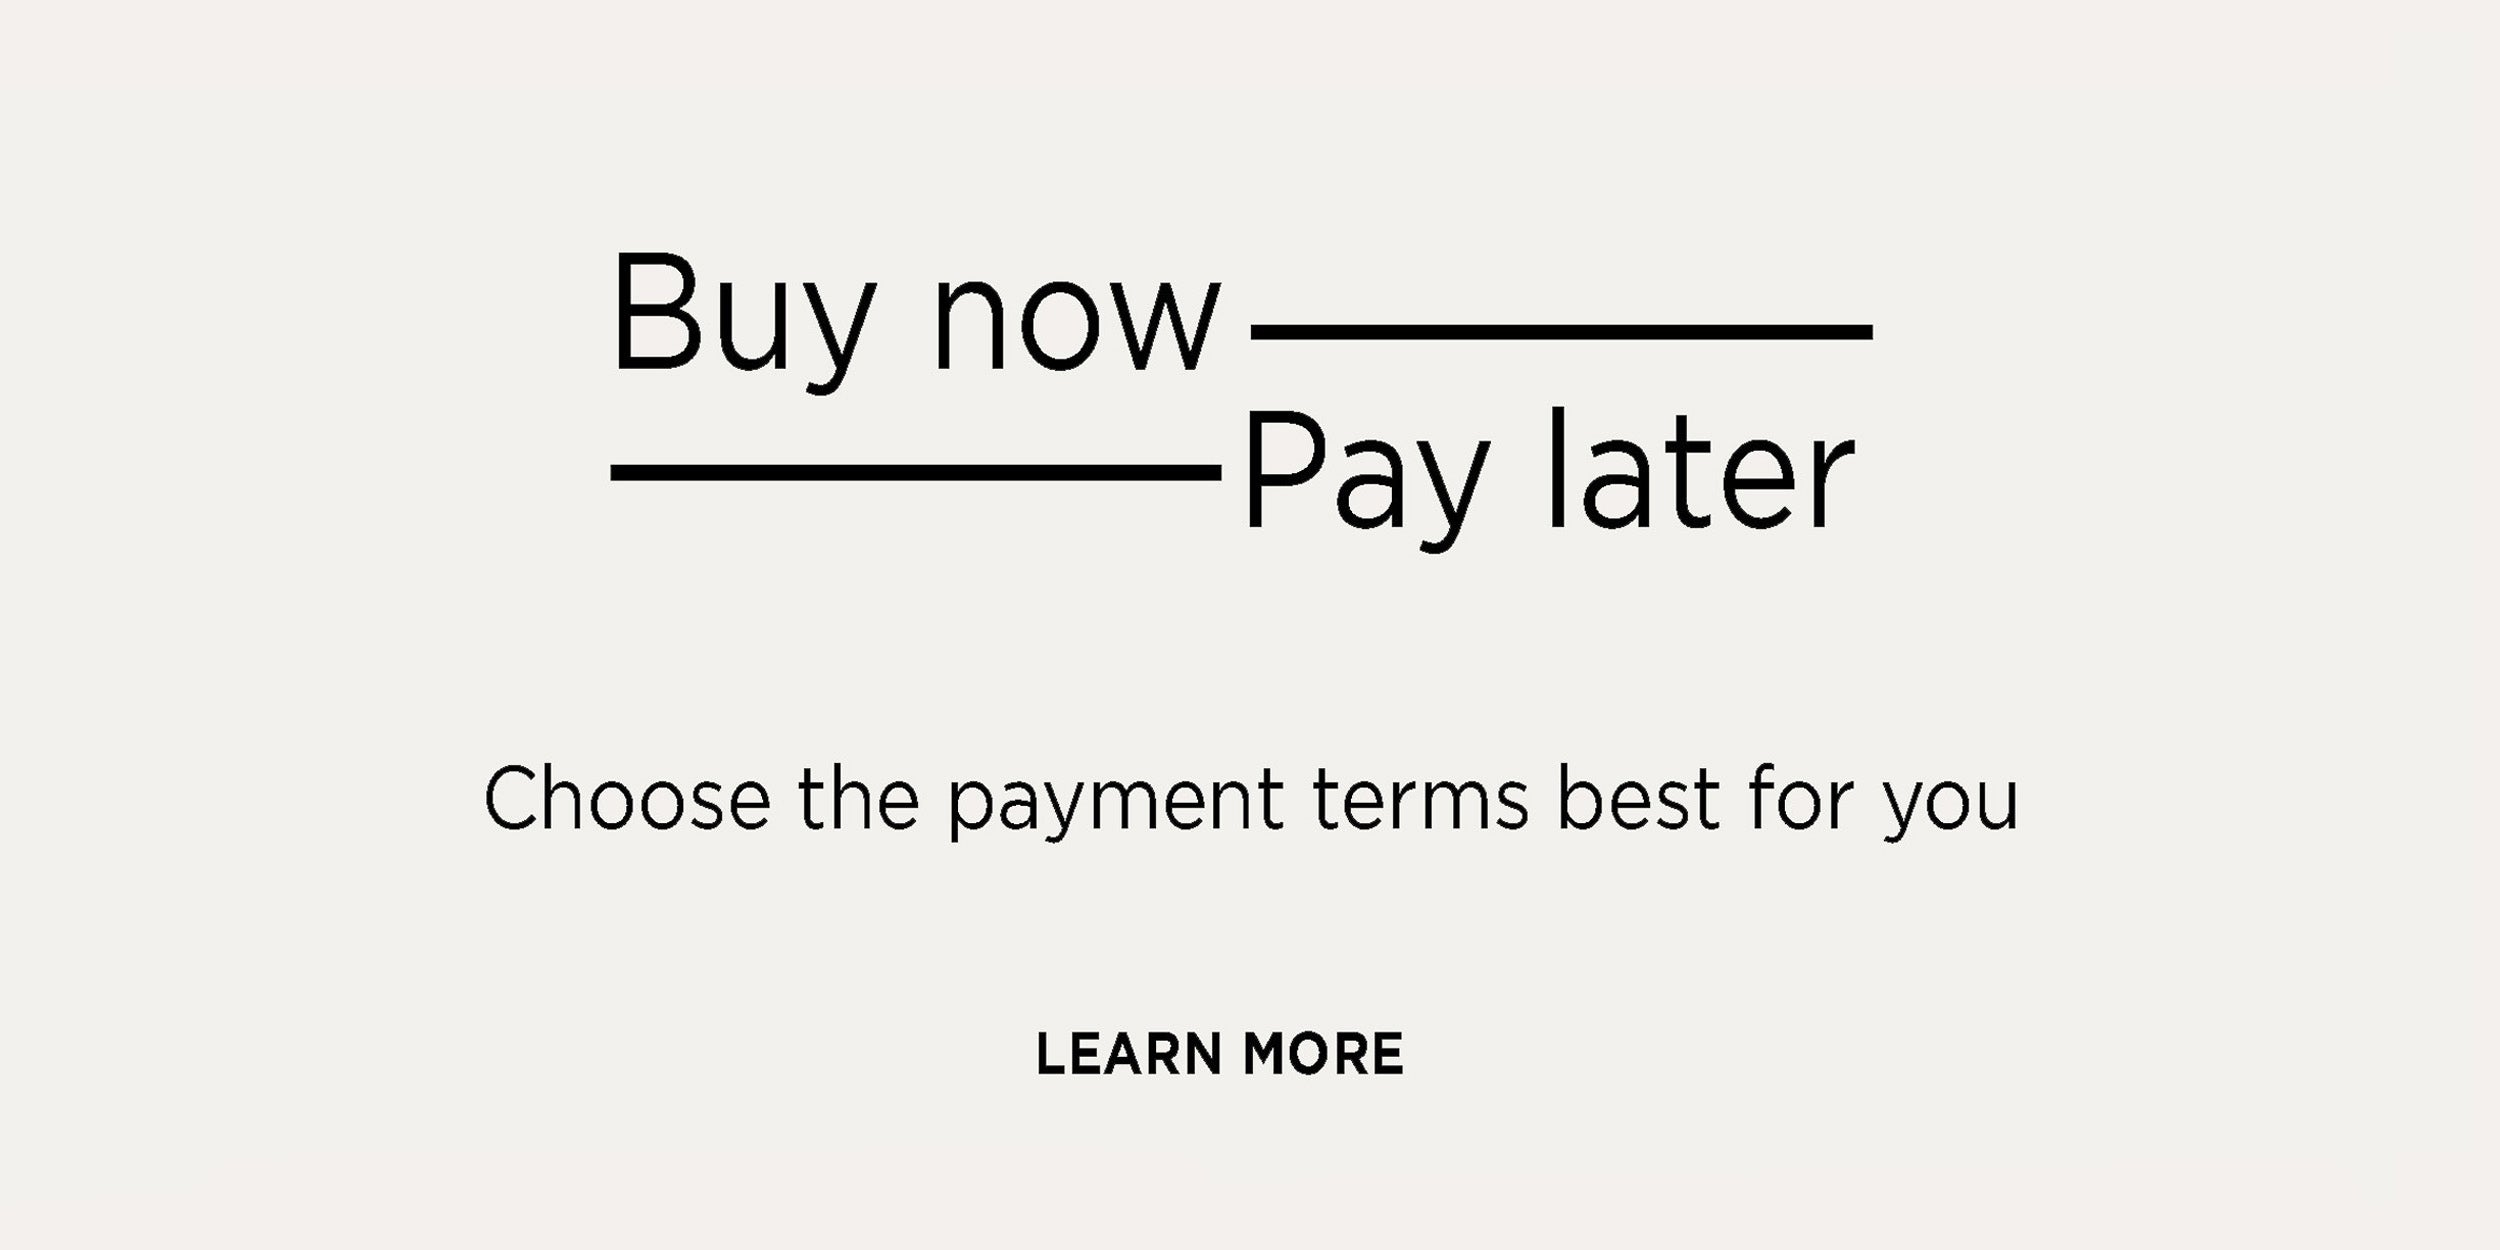 09- Buy now pay later flexible payment terms